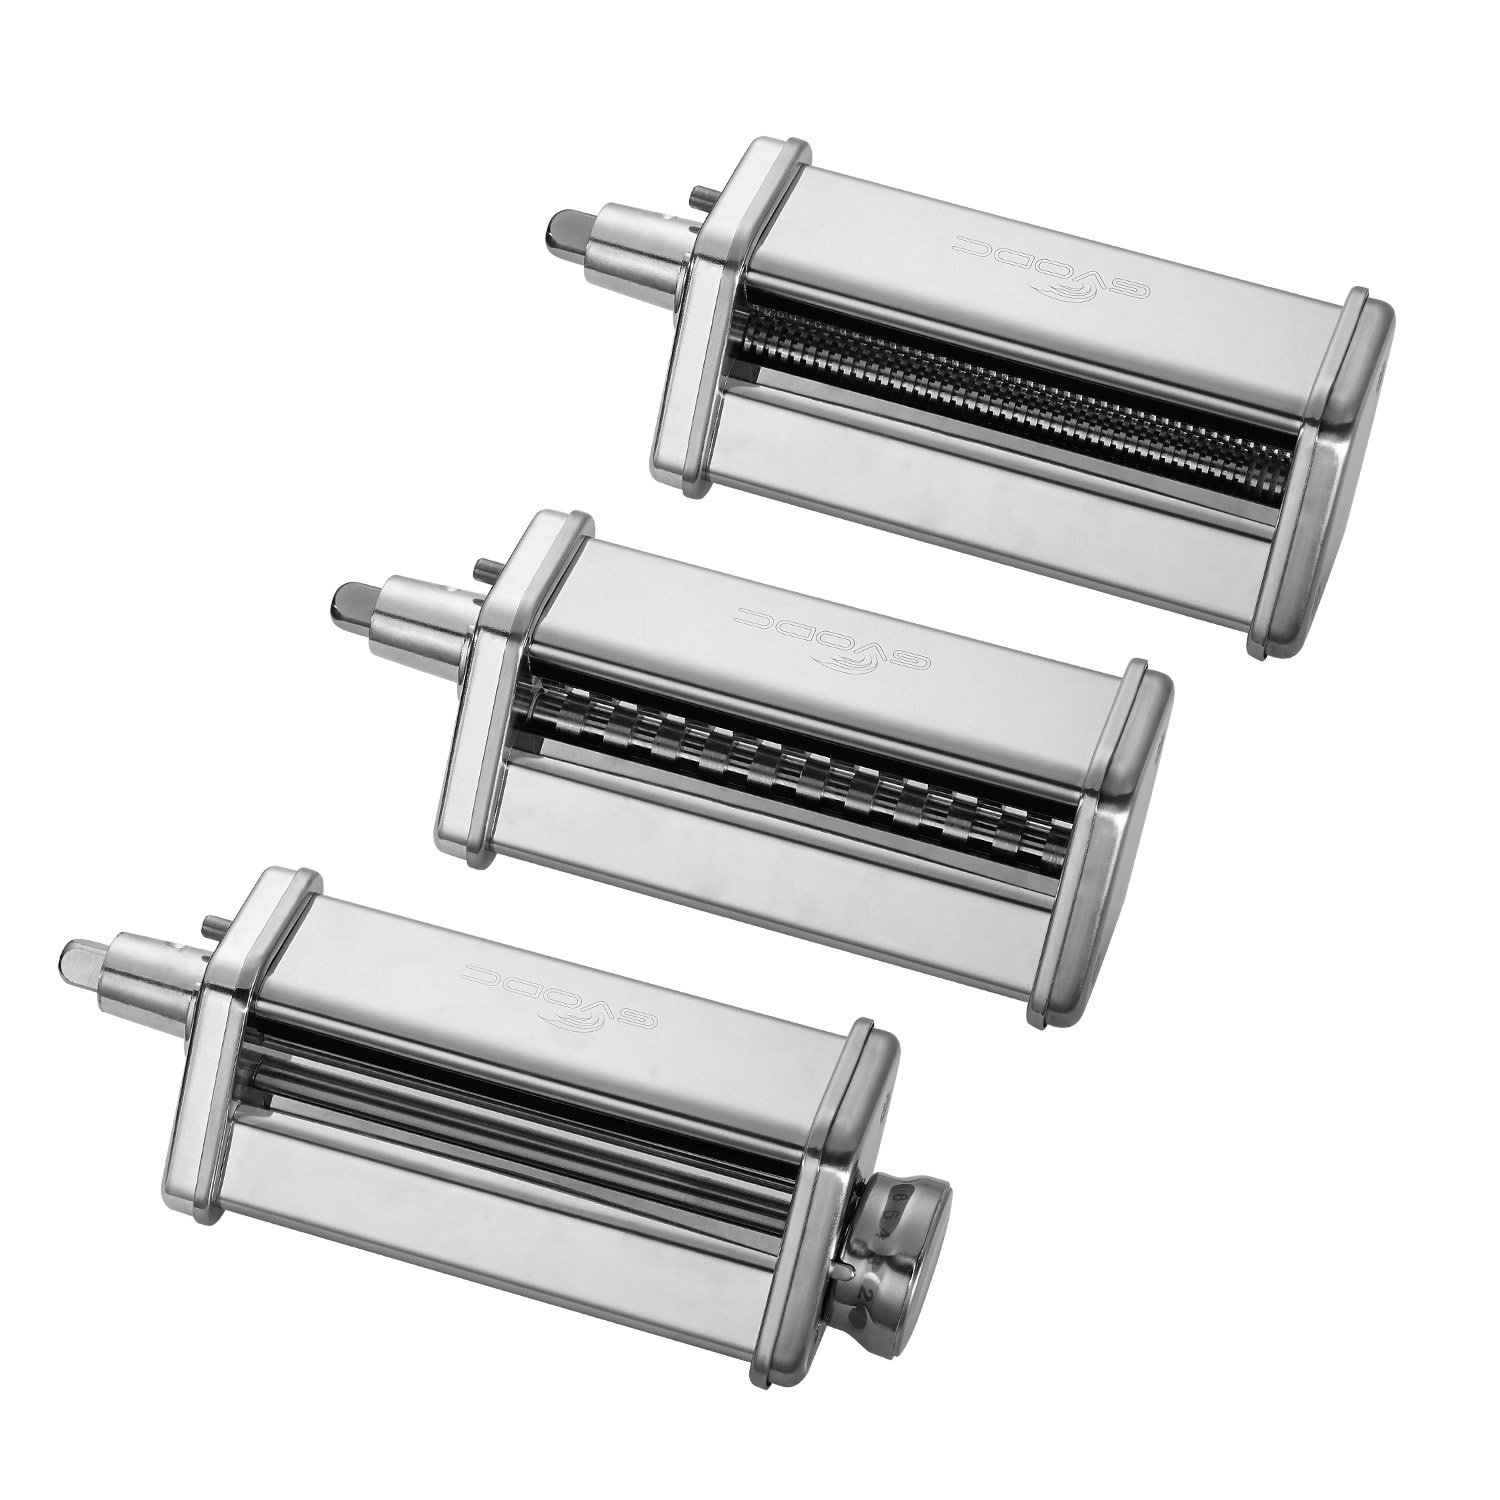 Gvode Kitchen 3-Piece Pasta Roller and Cutter Set for KitchenAid Stand Mixers,Stainless Steel by GVODE